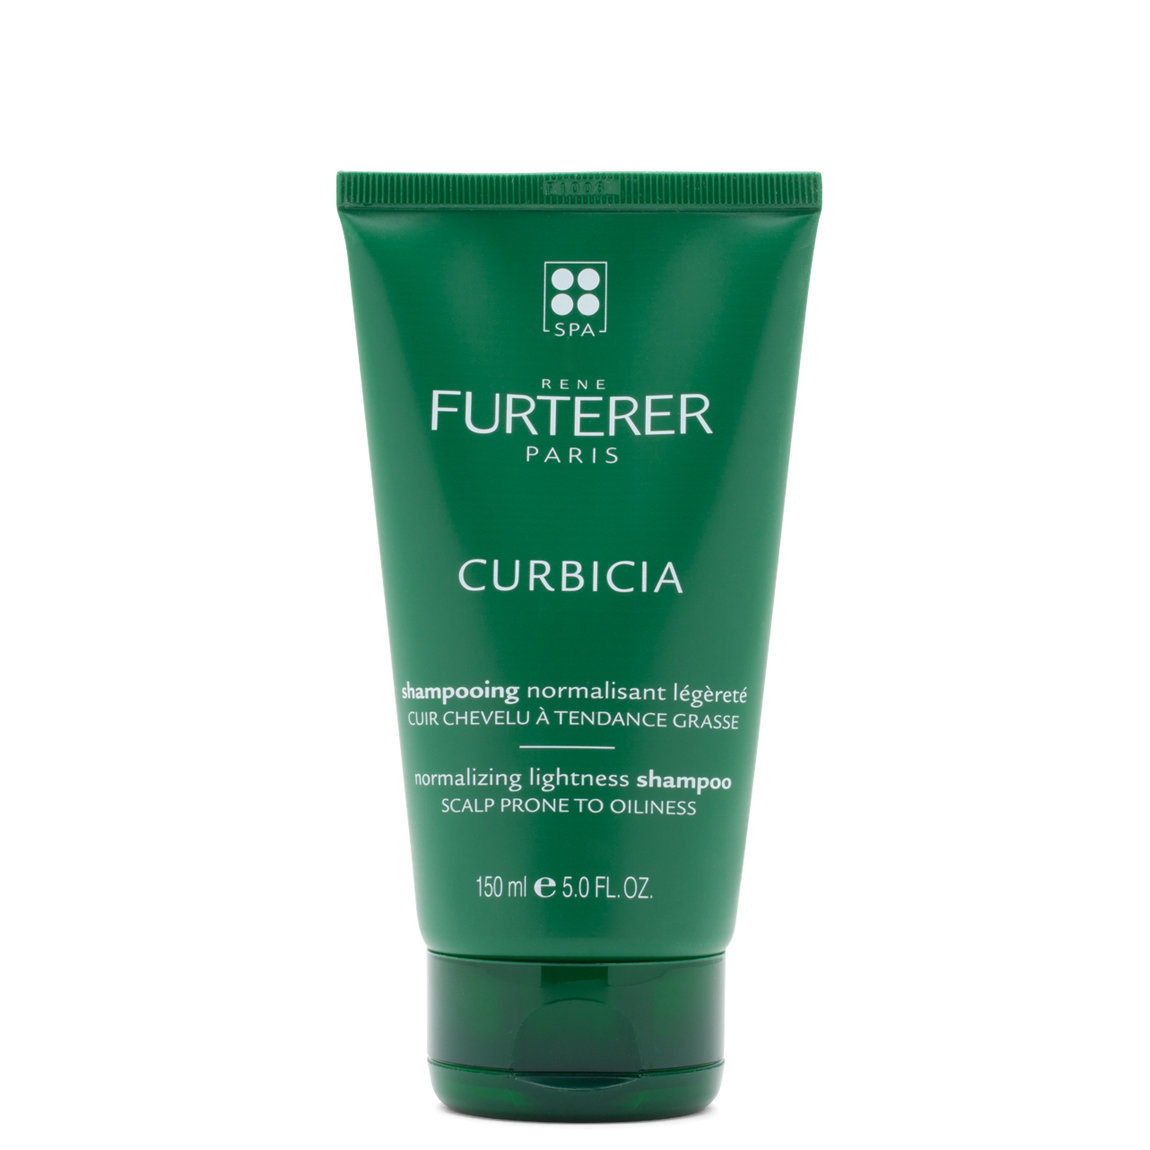 Rene Furterer Curbicia Lightness Regulating Shampoo product swatch.